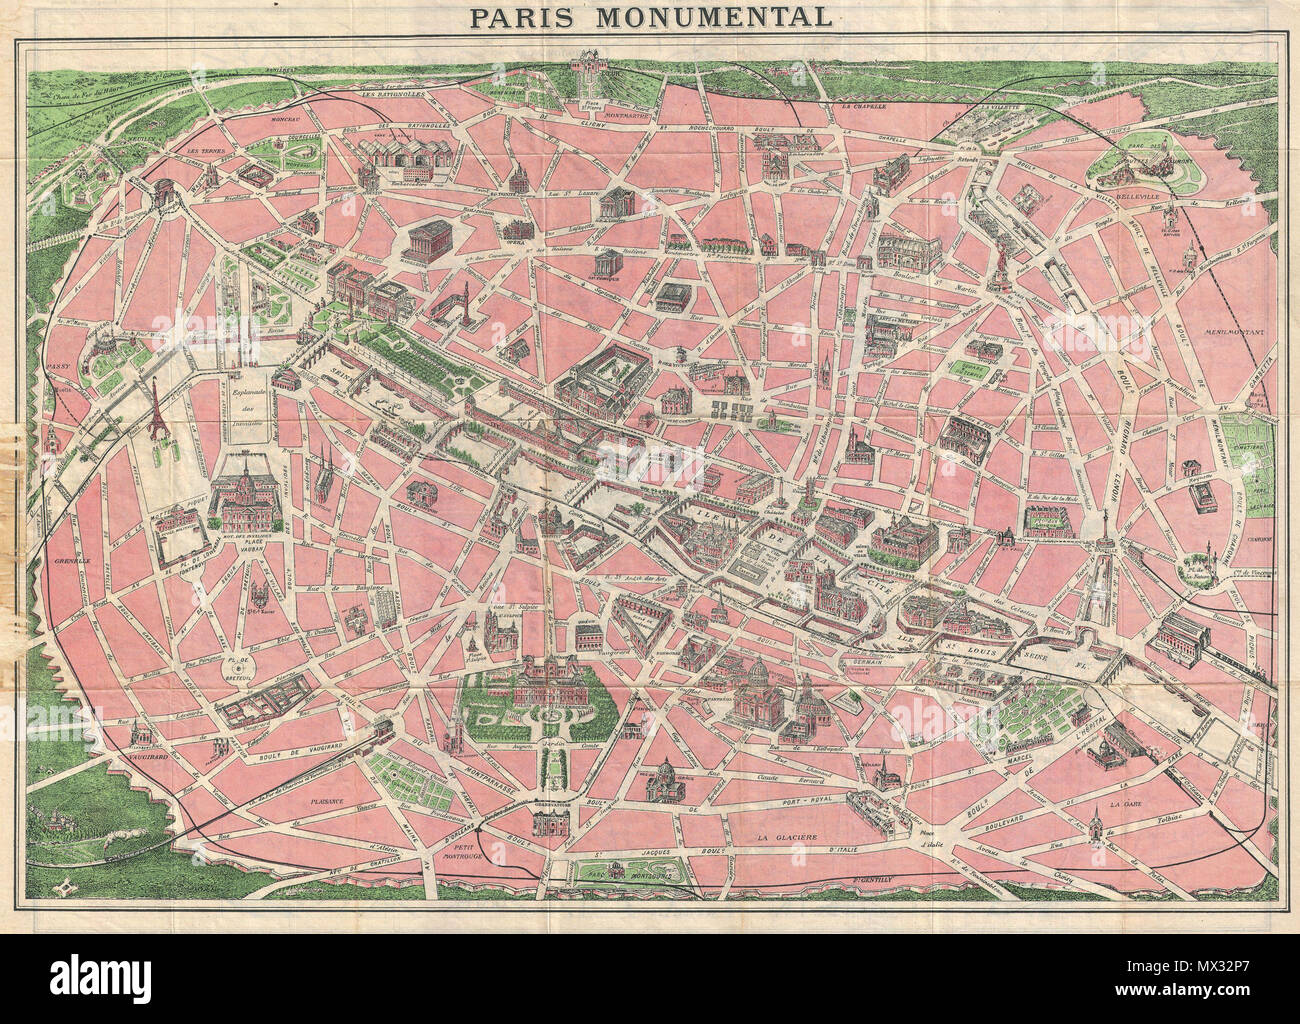 paris monumental english this is an extremely attractive 1926 tourist pocket map of paris france covers the old walled city of paris and the immediate